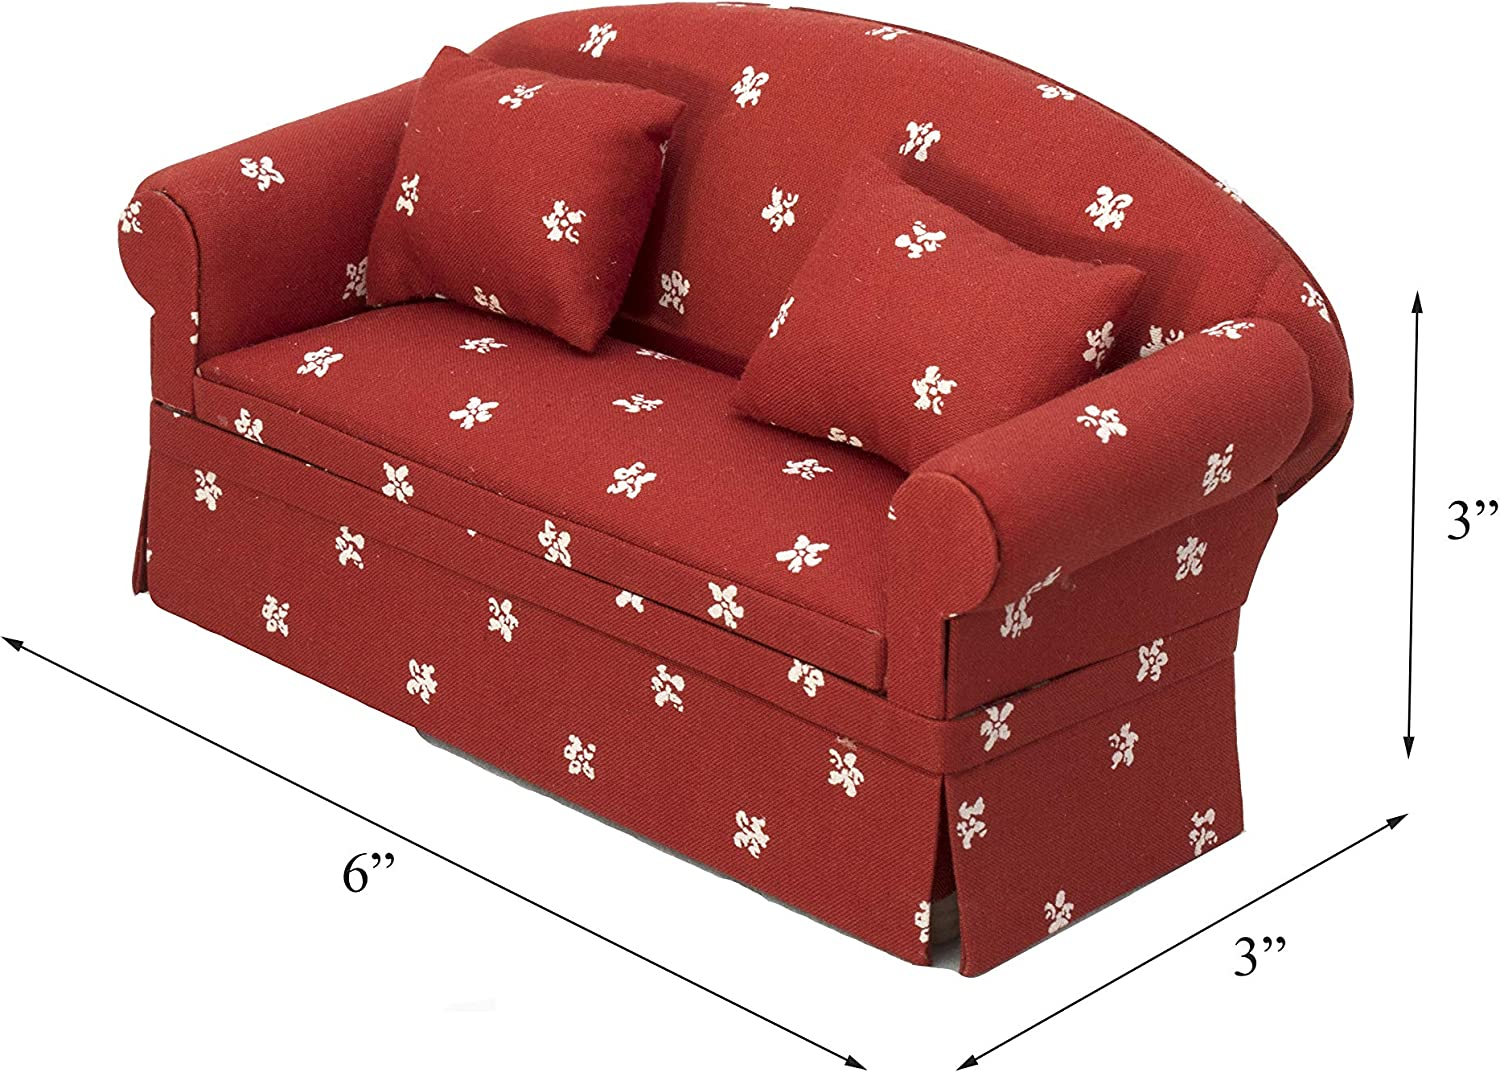 AB/_ 1:12 Dollhouse Miniature Furniture Floral Sofa Couch Living Room Decor Toy C